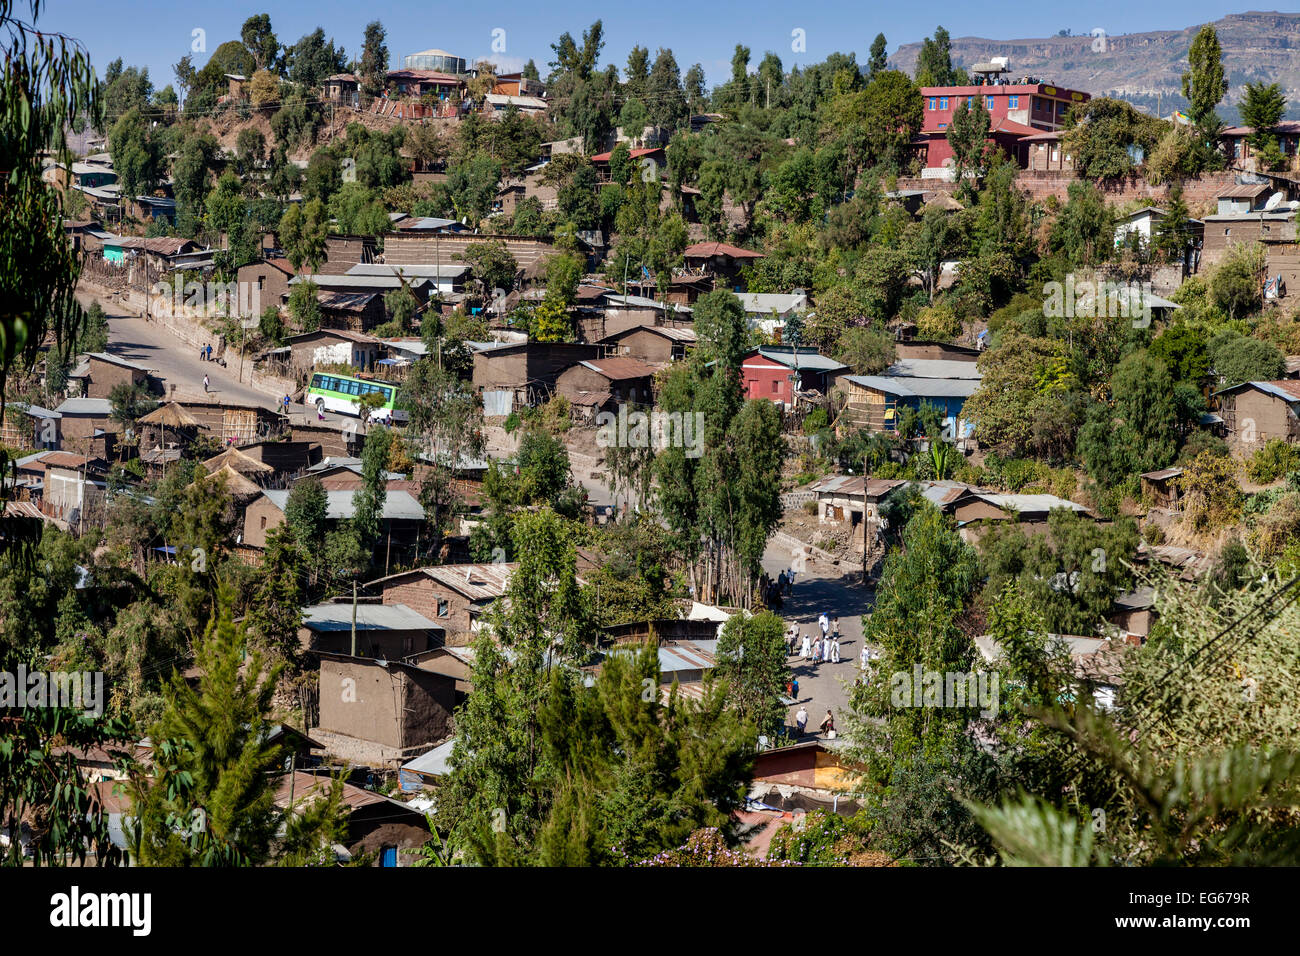 An Elevated View Of The Town Of Lalibela, Ethiopia - Stock Image